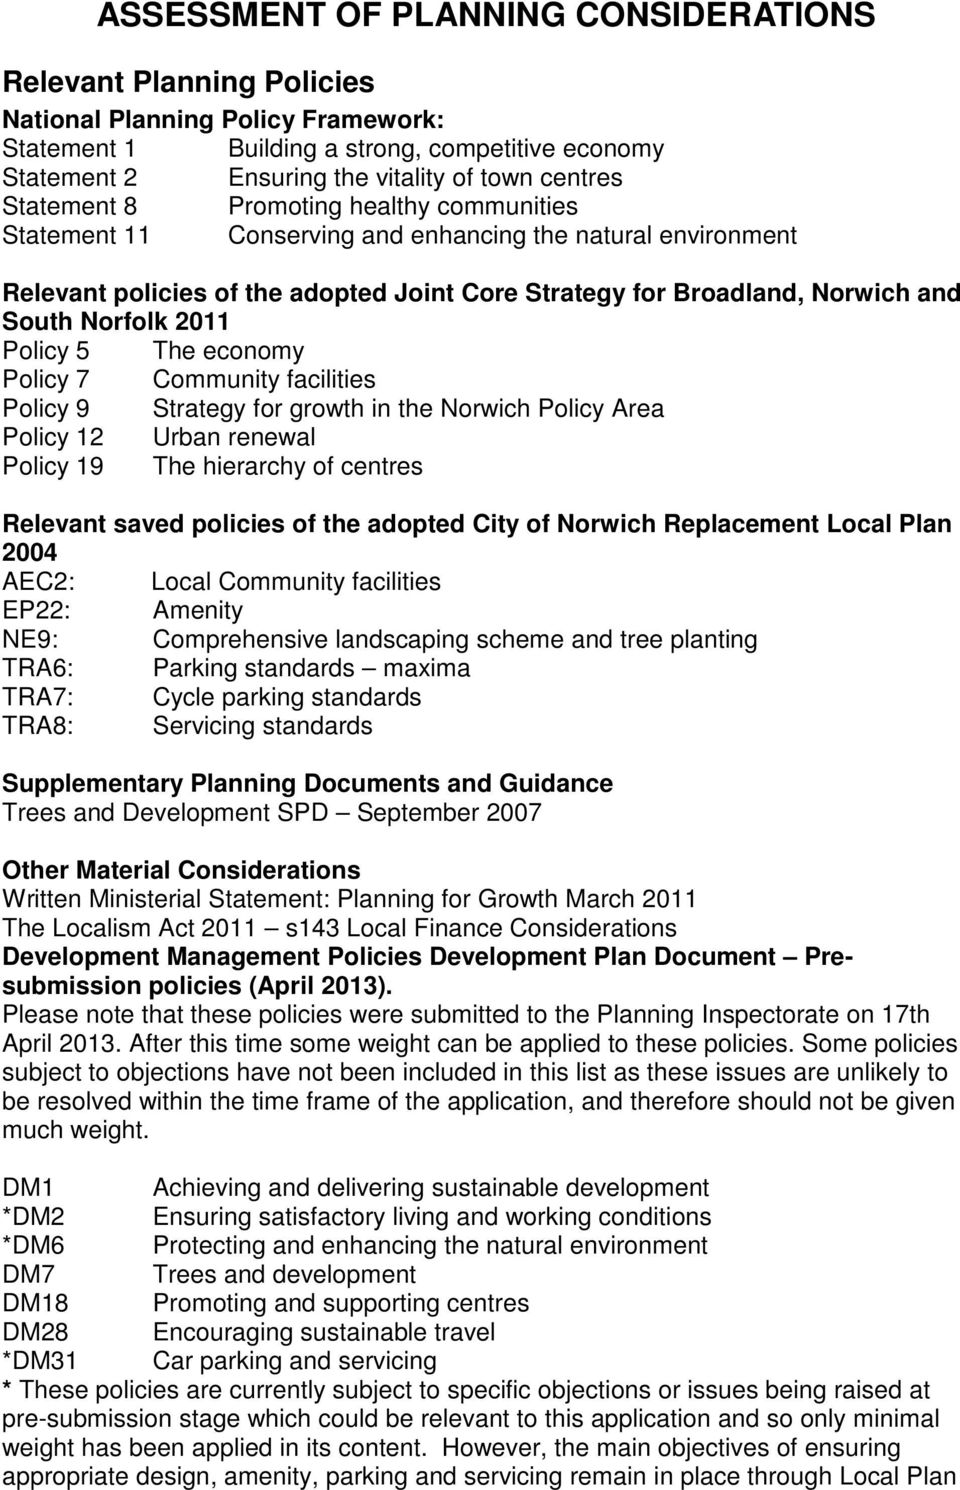 Norfolk 2011 Policy 5 The economy Policy 7 Community facilities Policy 9 Strategy for growth in the Norwich Policy Area Policy 12 Urban renewal Policy 19 The hierarchy of centres Relevant saved